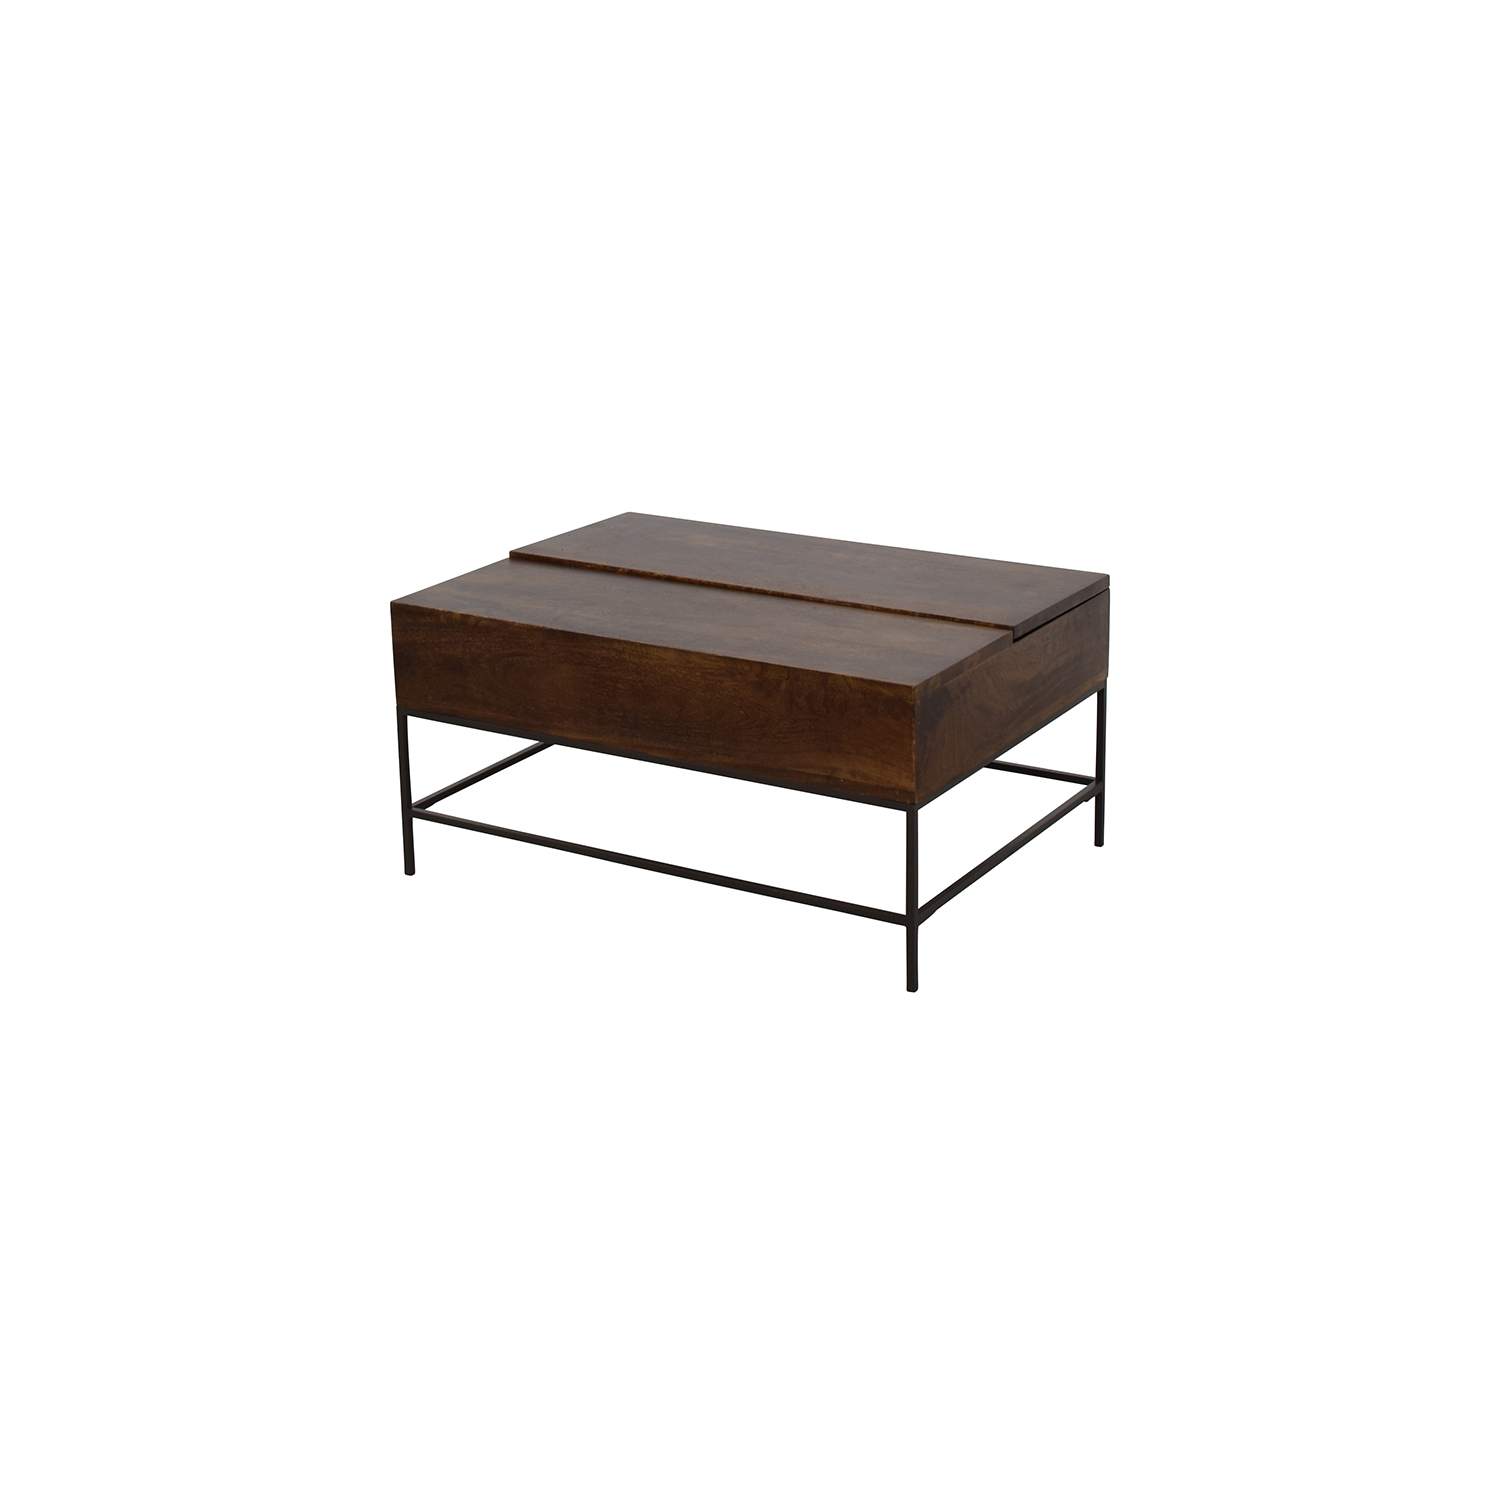 75 off west elm west elm industrial storage coffee for West elm coffee table sale